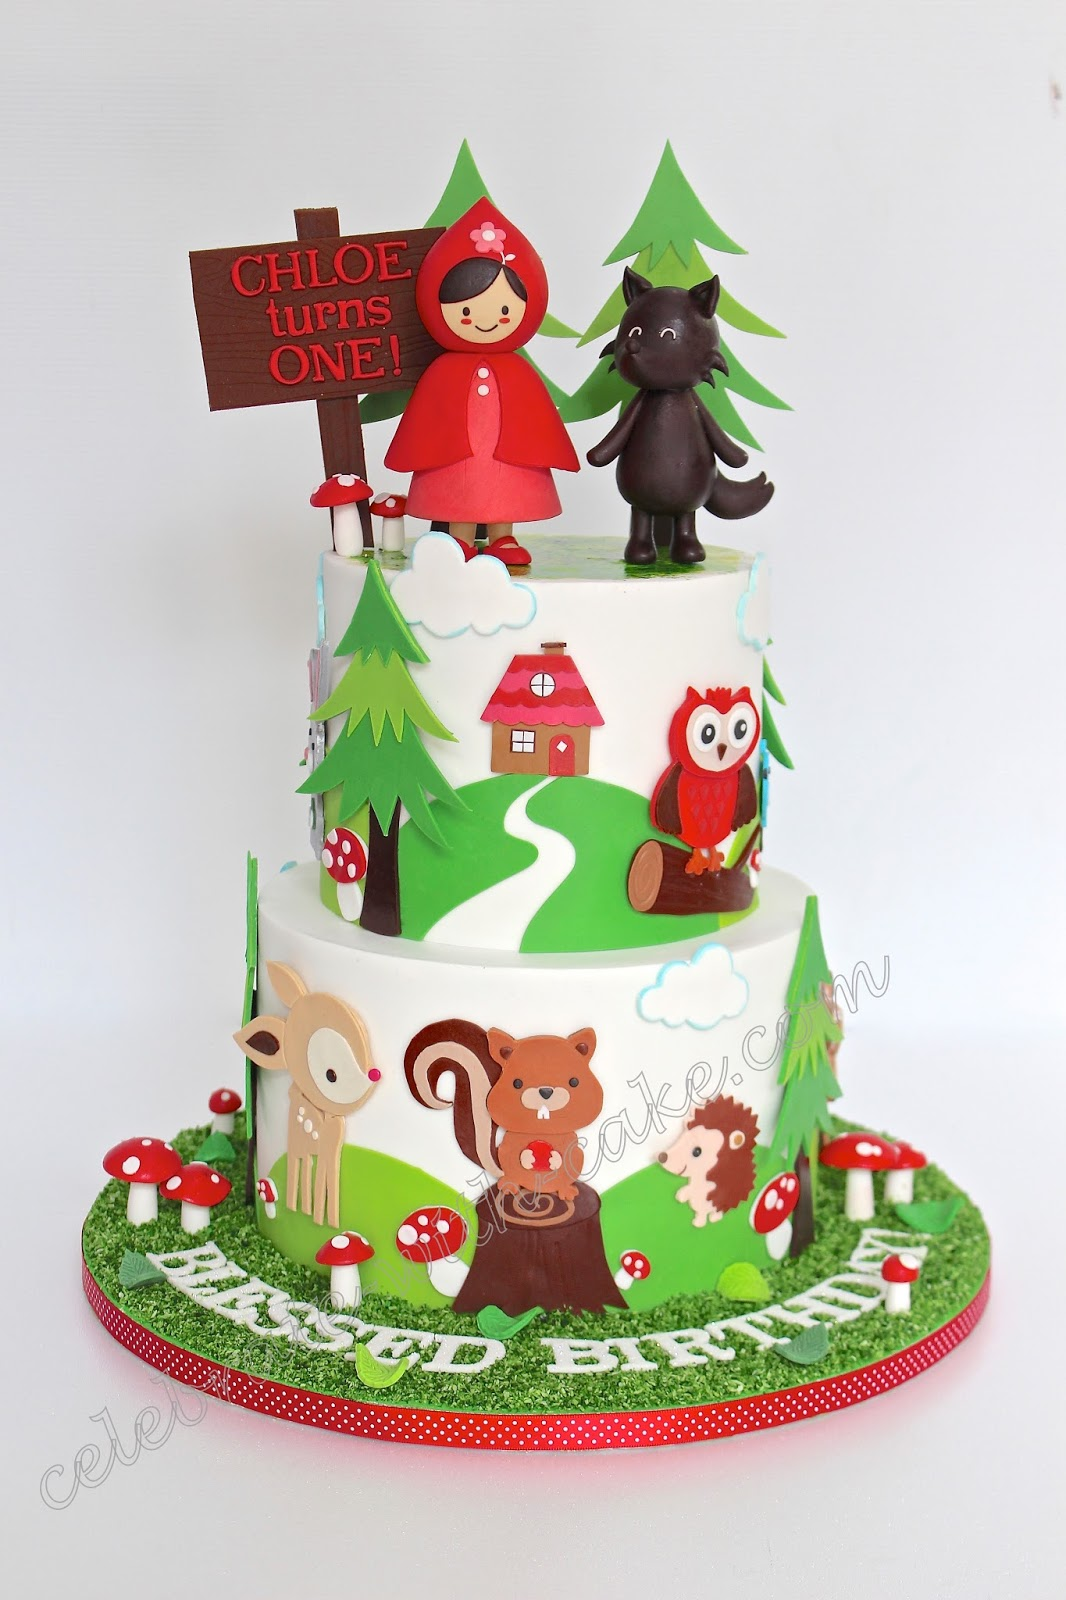 Celebrate With Cake Little Red Riding Hood 1st Birthday